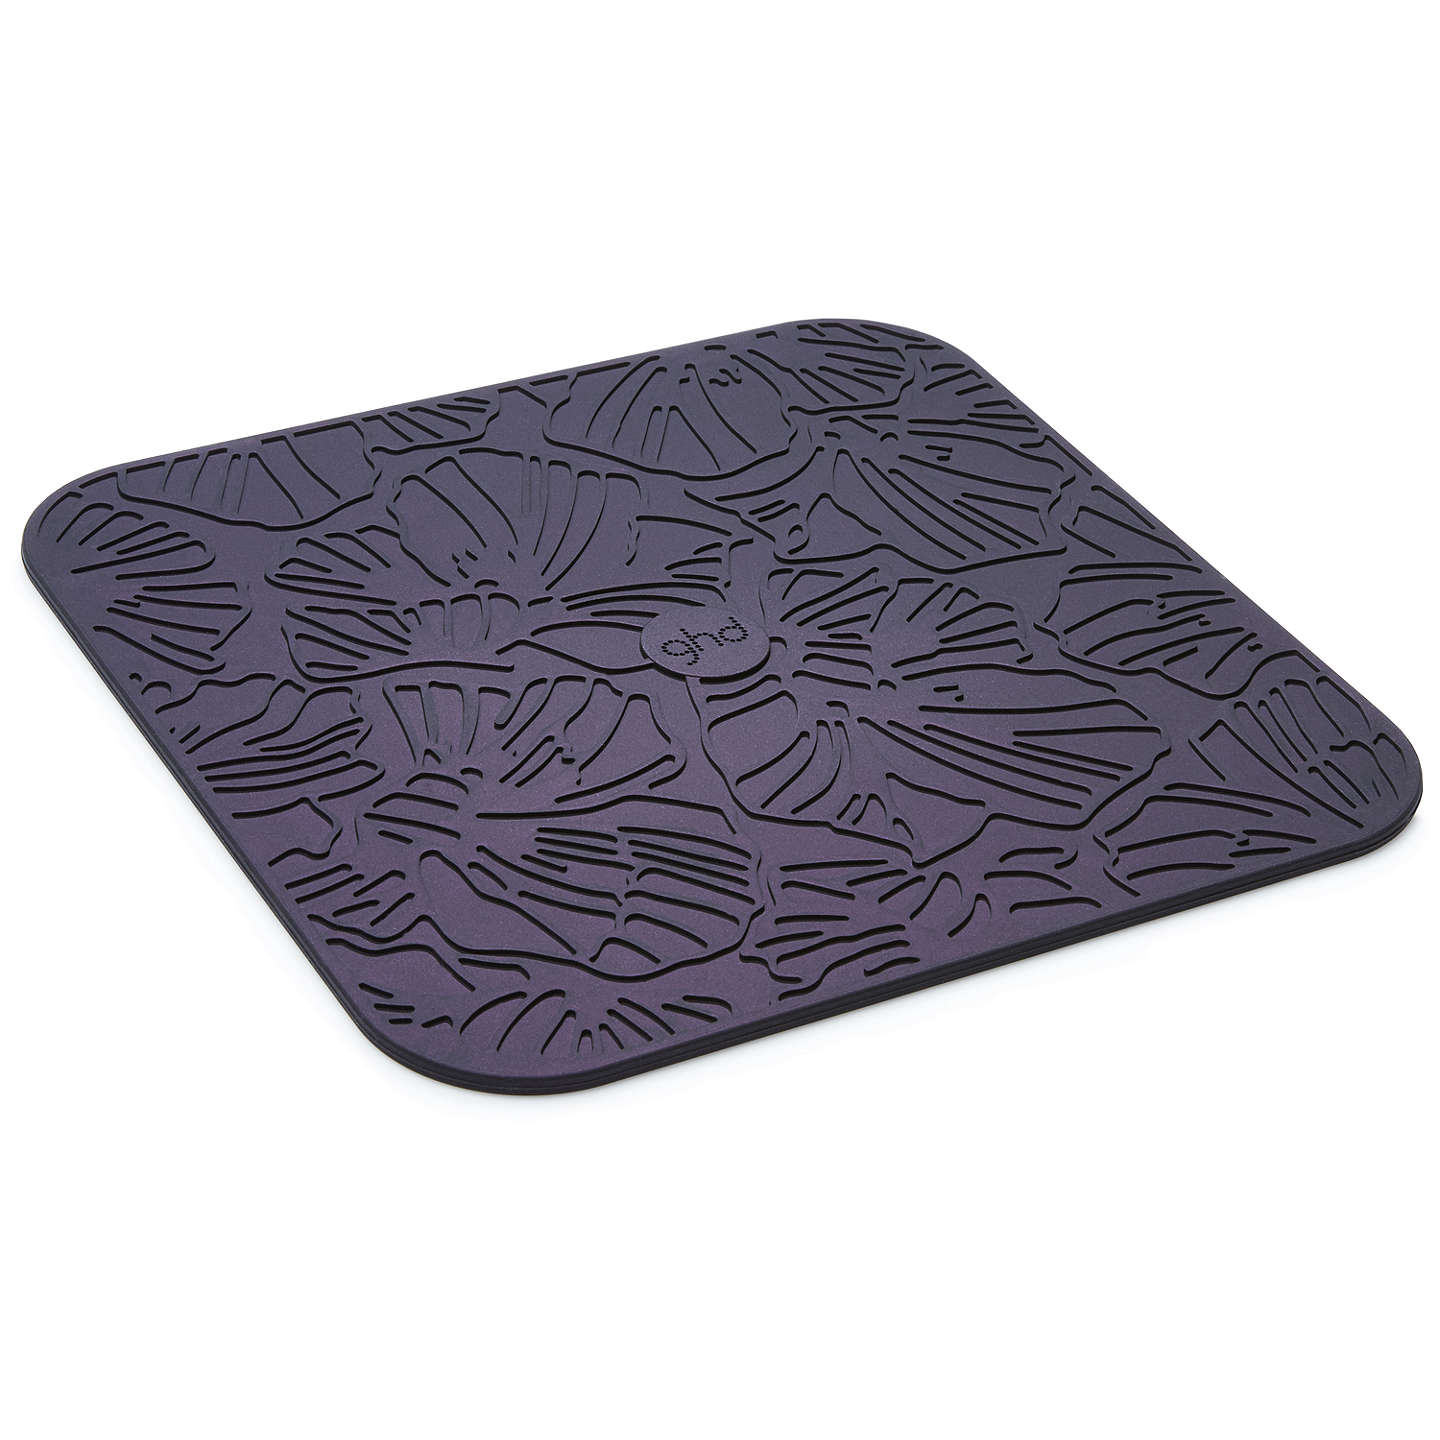 Buyghd Dry and Style Limited Edition Nocturne Gift Set, Black Online at johnlewis.com